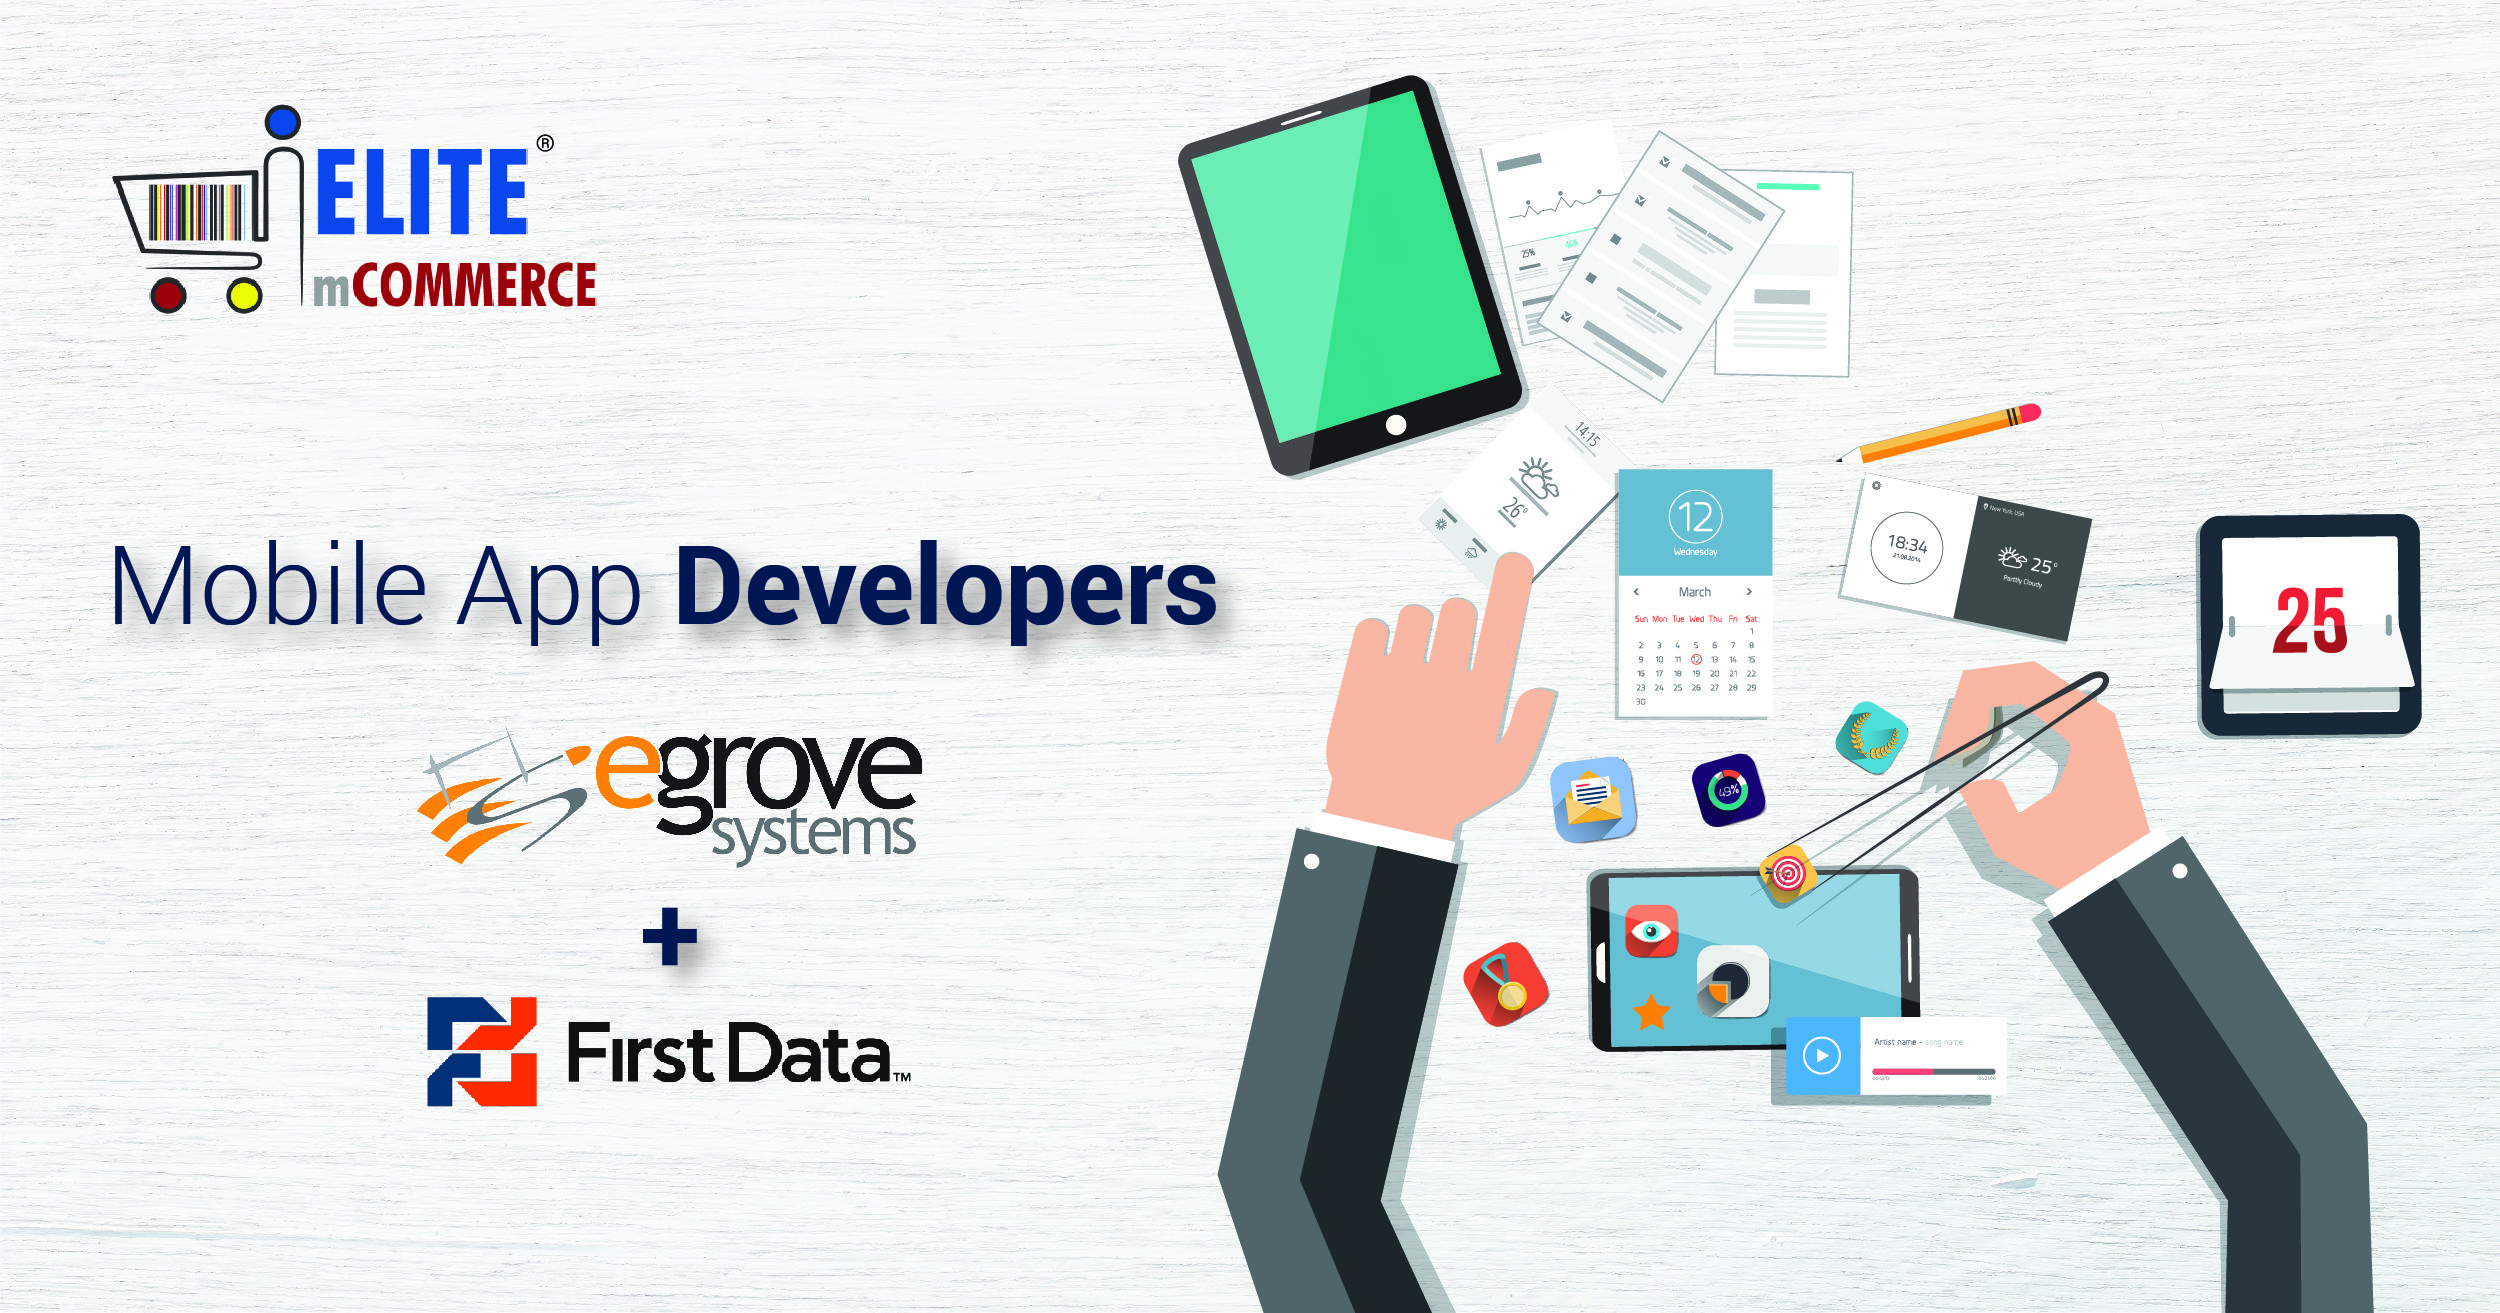 Egrove Systems Corporation is integrated with the mobile